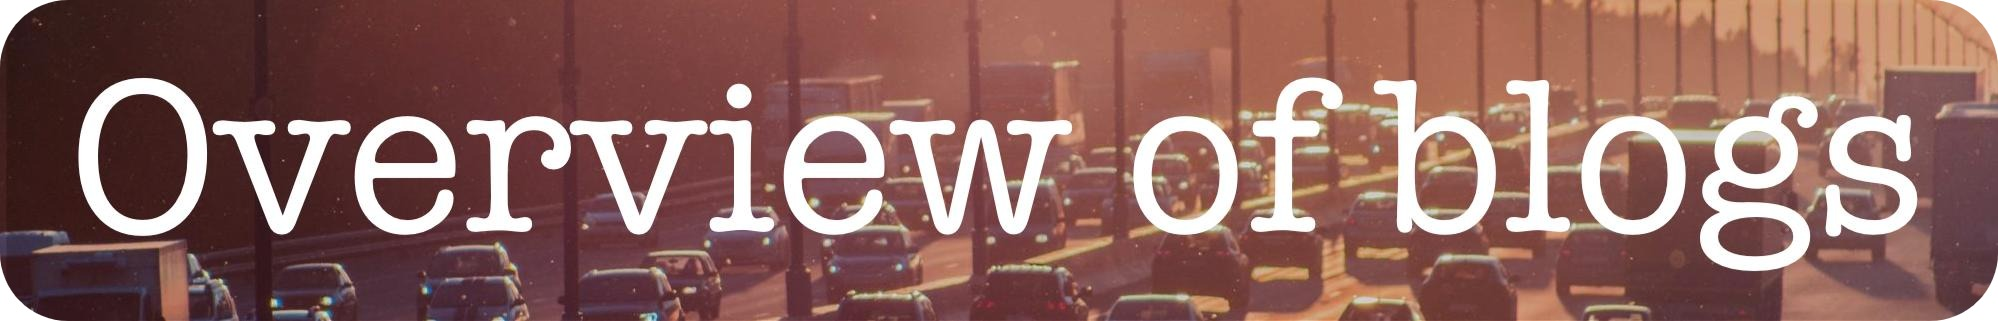 button_to_blog.jpg